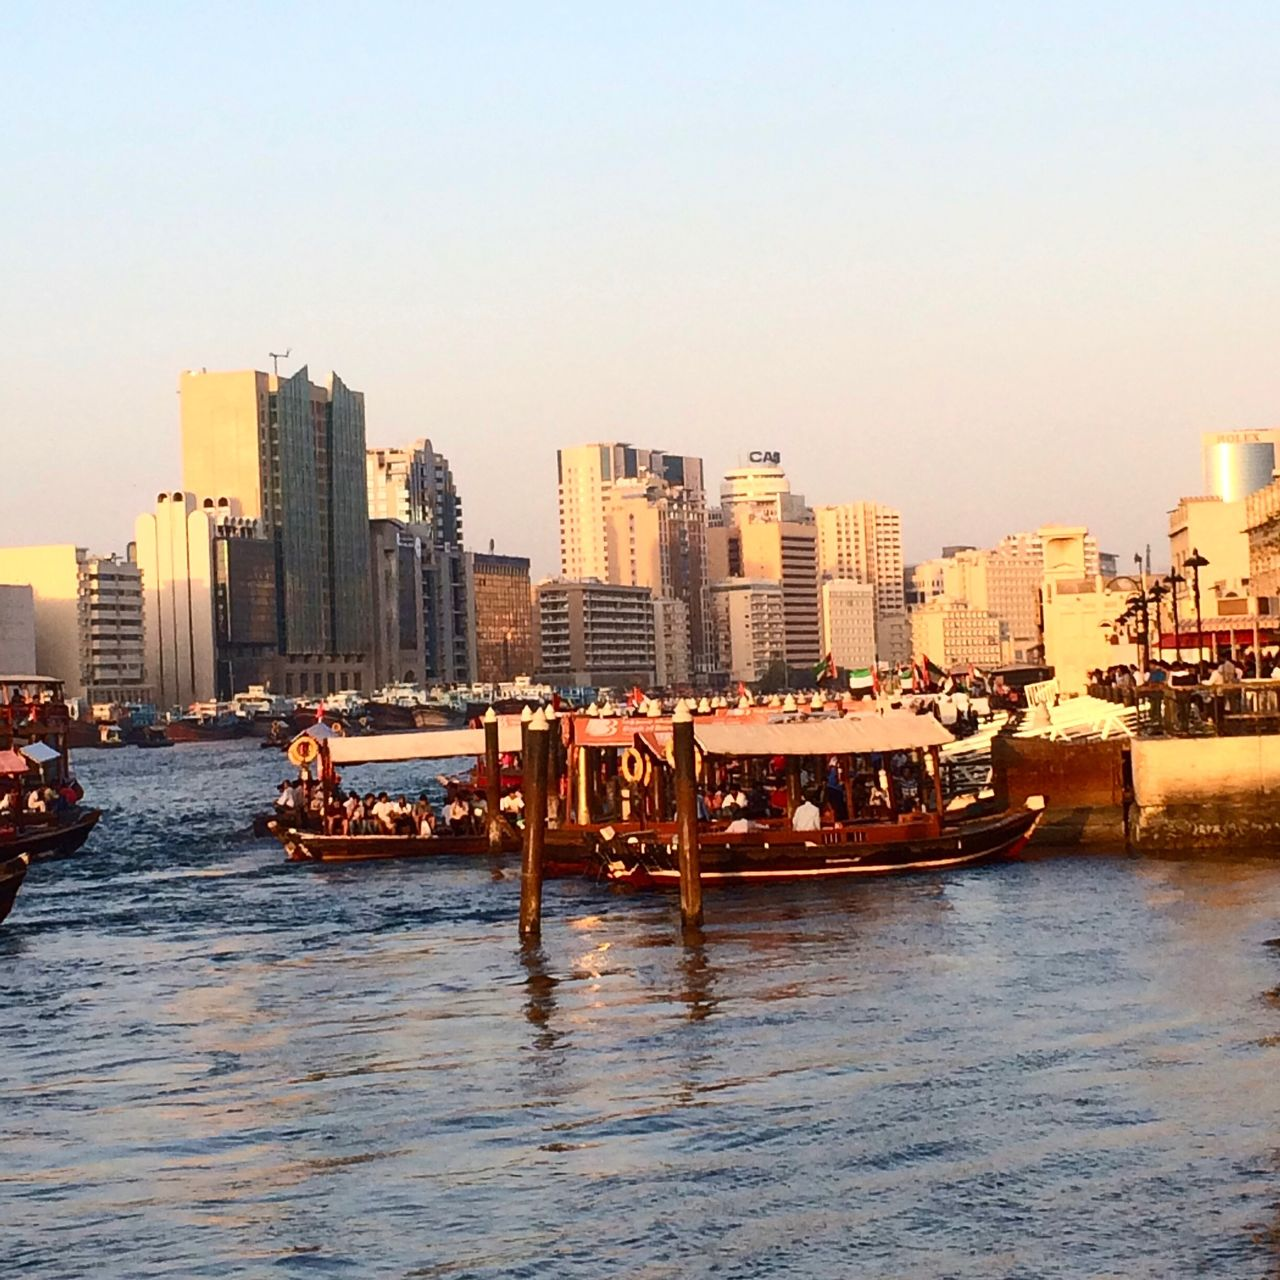 architecture, building exterior, water, waterfront, built structure, city, sea, clear sky, outdoors, cityscape, skyscraper, nautical vessel, city life, day, sky, large group of people, real people, urban skyline, nature